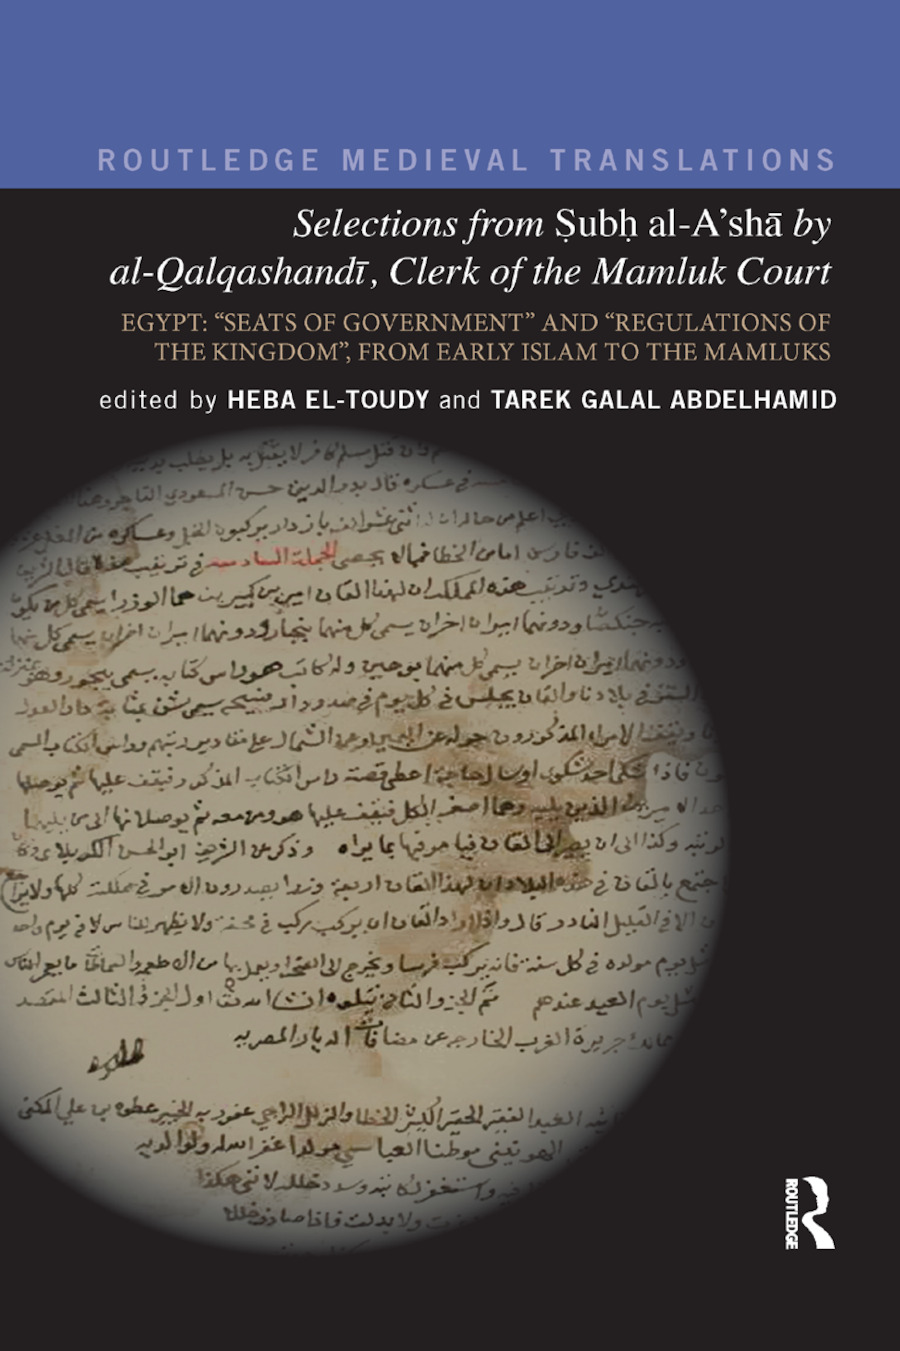 Selections from Subh al-A'sha by al-Qalqashandi, Clerk of the Mamluk Court: Egypt: �Seats of Government� and �Regulations of the Kingdom�, From Early Islam to the Mamluks book cover